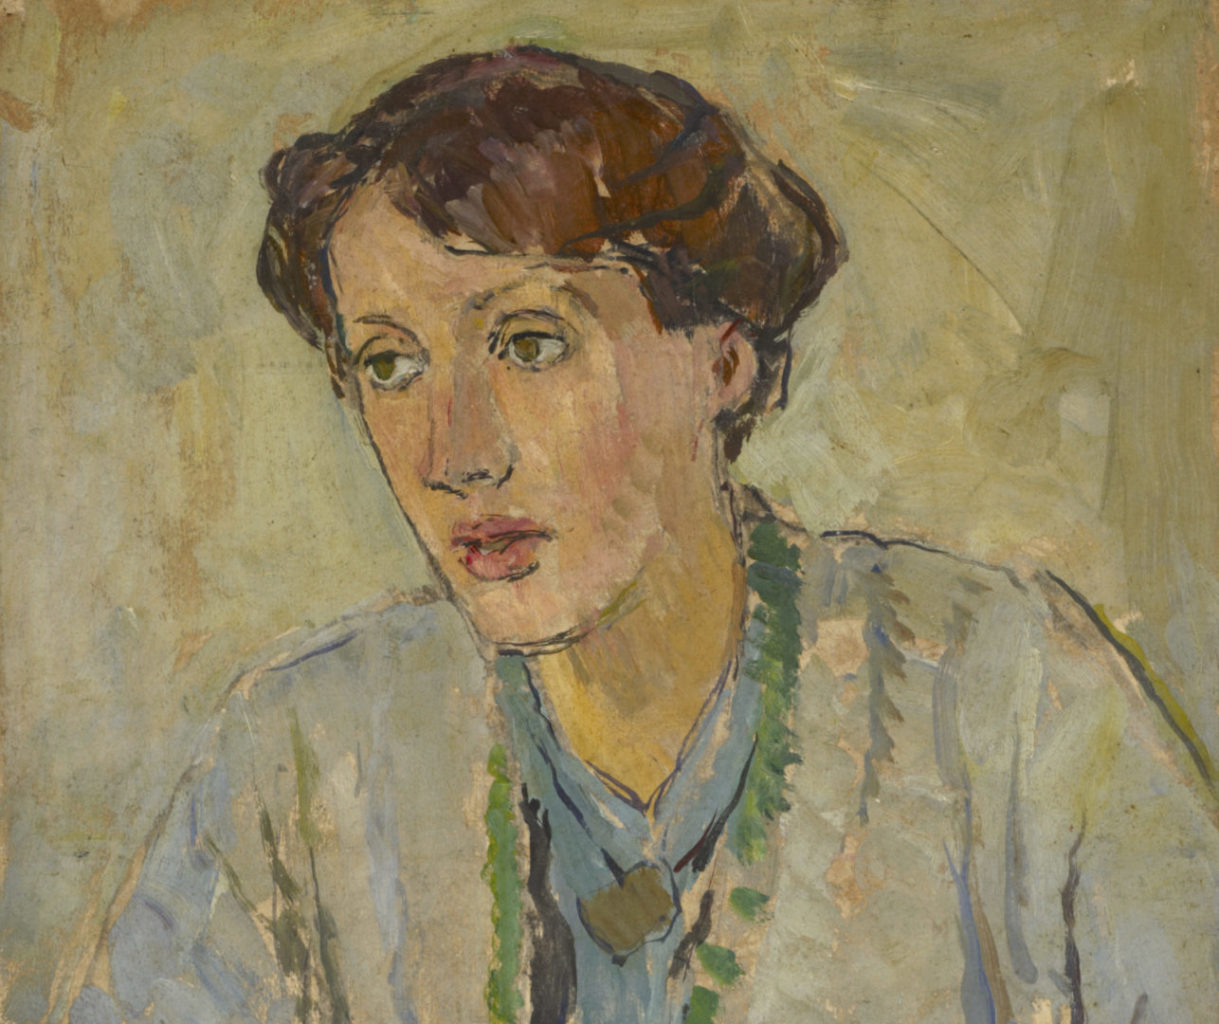 virginia woolf art life and vision the london magazine virginia woolf art life and vision